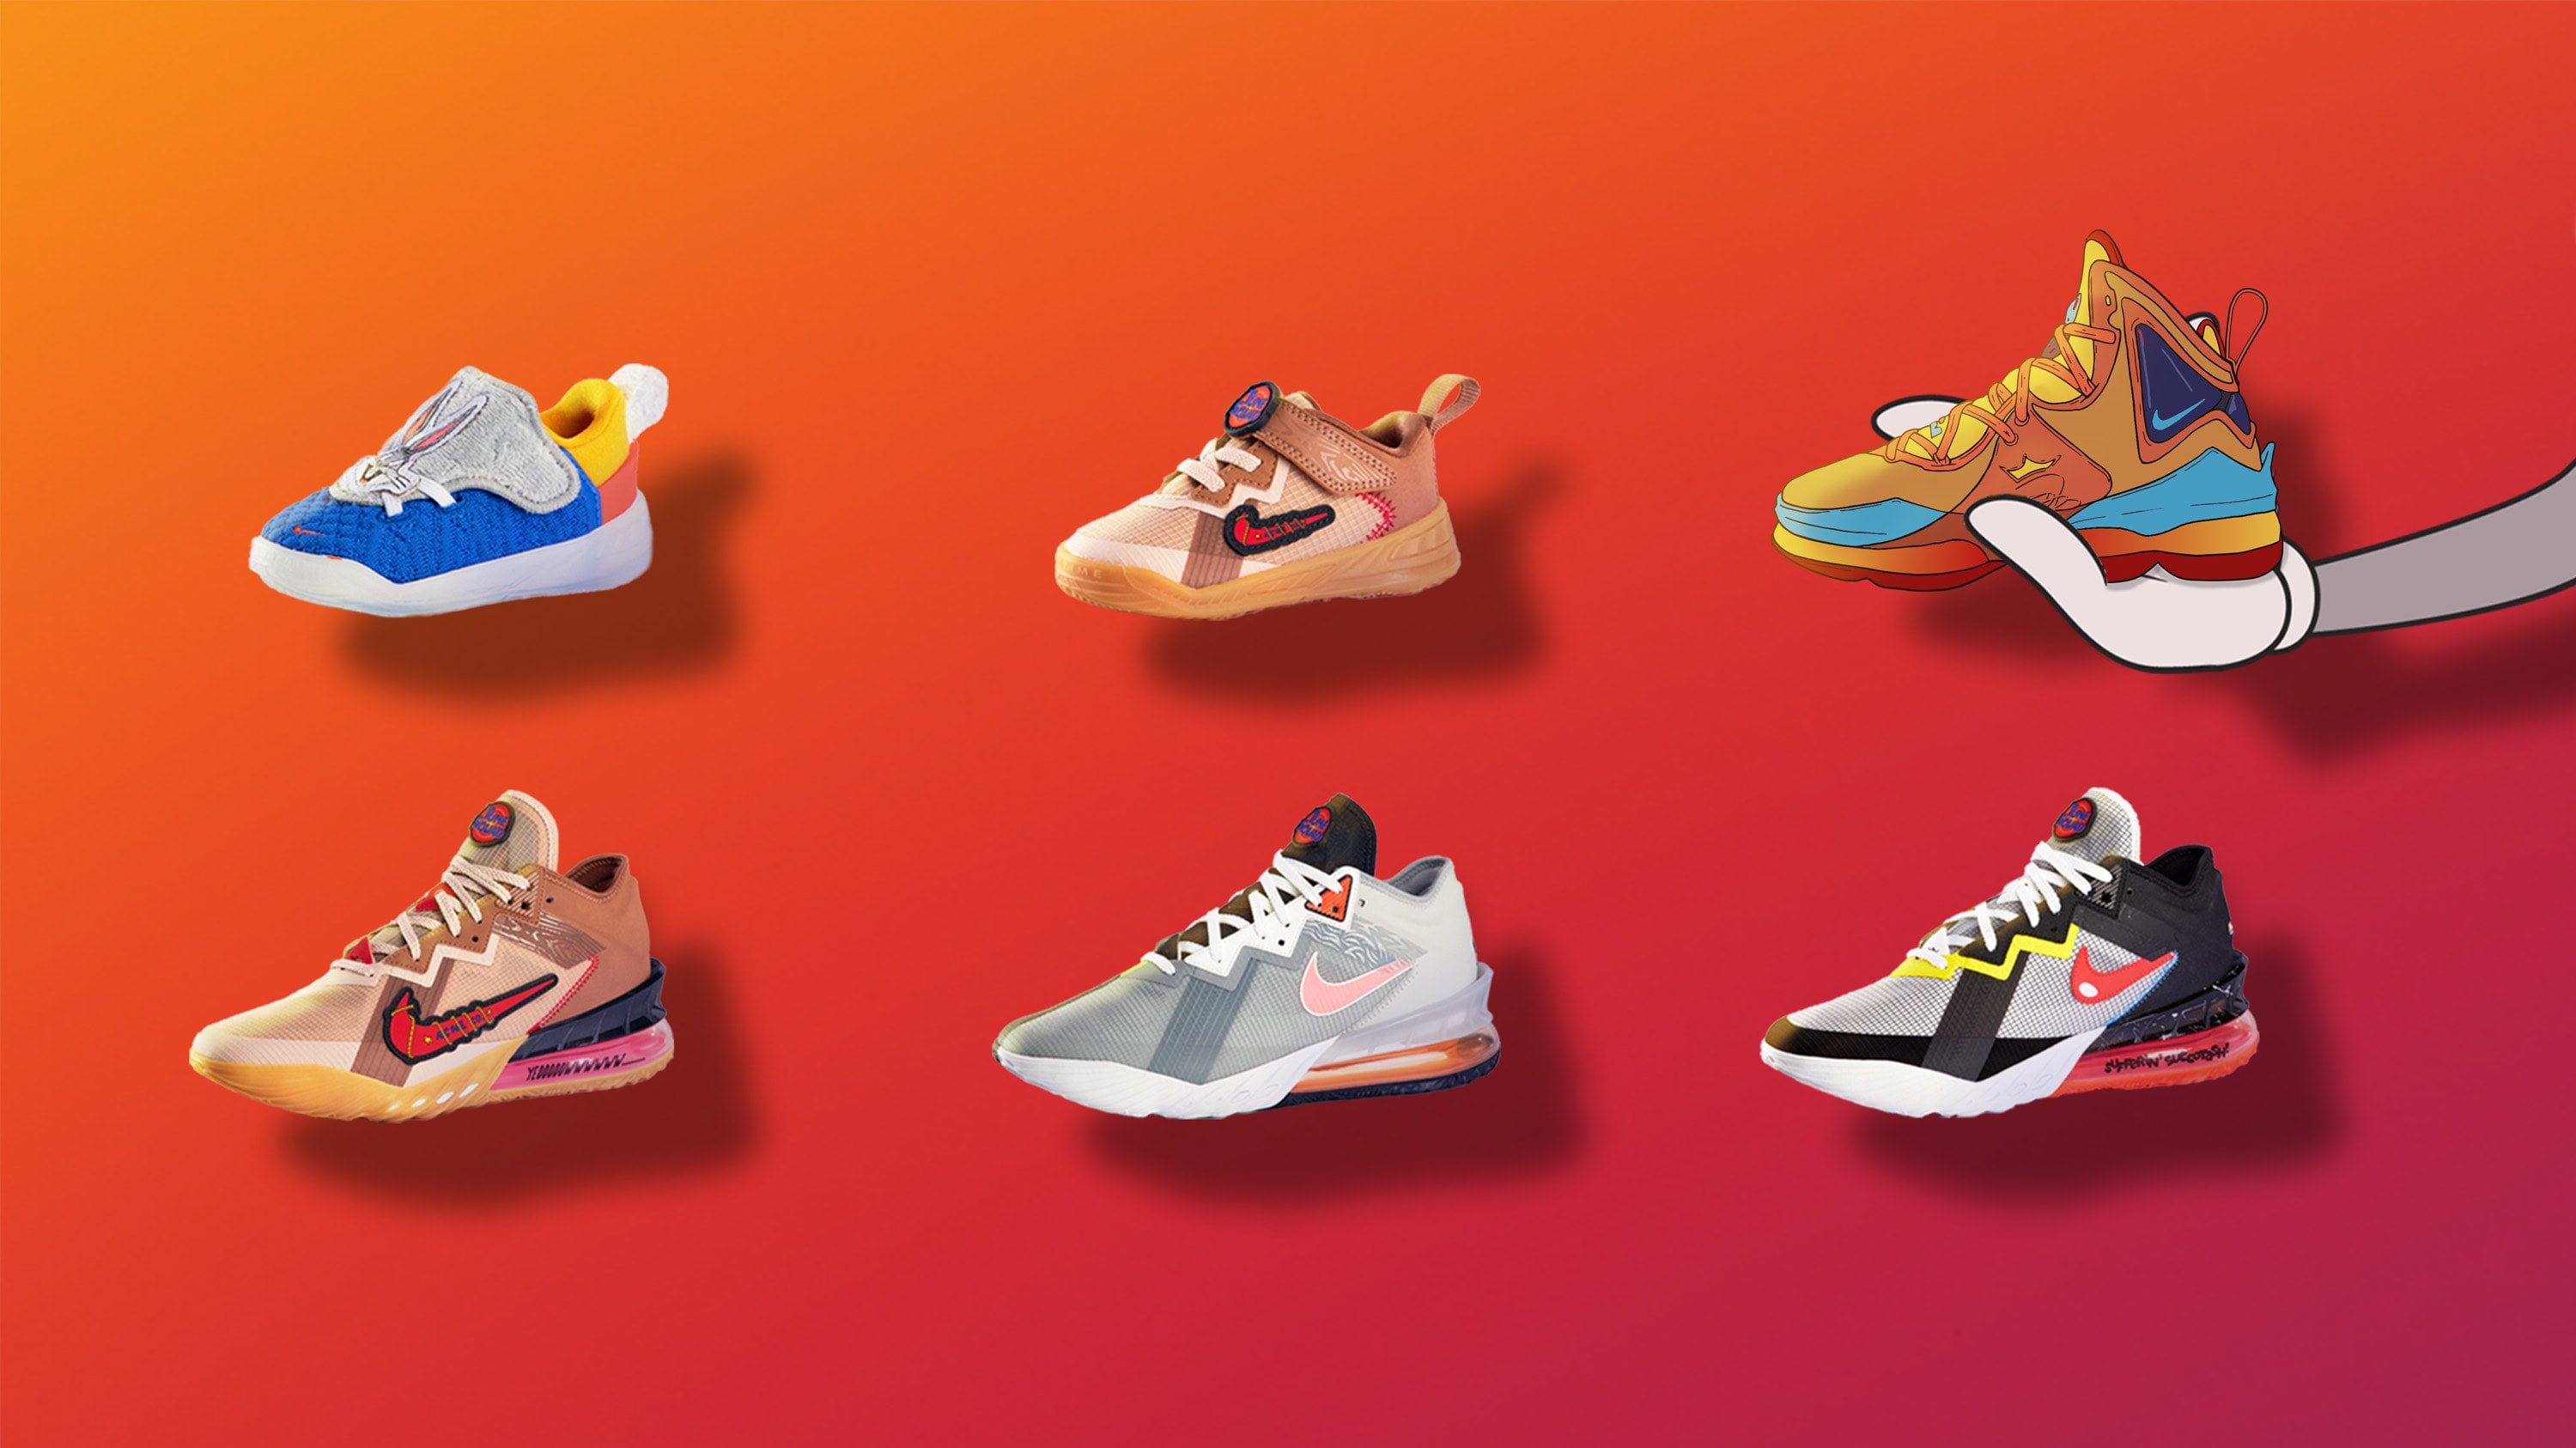 Nike LeBron 18 Low Space Jam: A New Legacy Collection